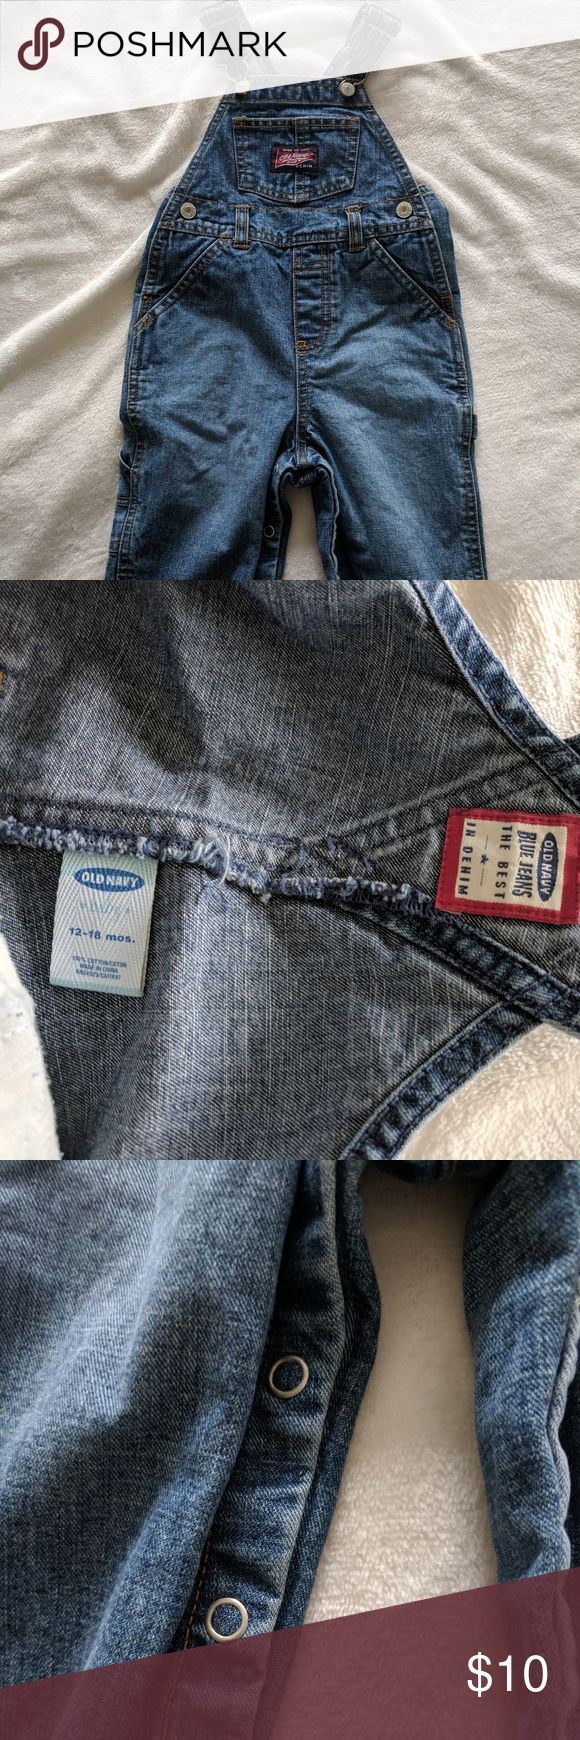 Old Navy Jean Overalls size 12-18 mos Old Navy jean overalls with snaps down the inside of the legs.   Brand: Old Navy Size: 12-18 months Color: Jean Previously loved.   Bundle Discounts and reasonable offers accepted, just ask..  Thank you for browsing! Old Navy Bottoms Overalls